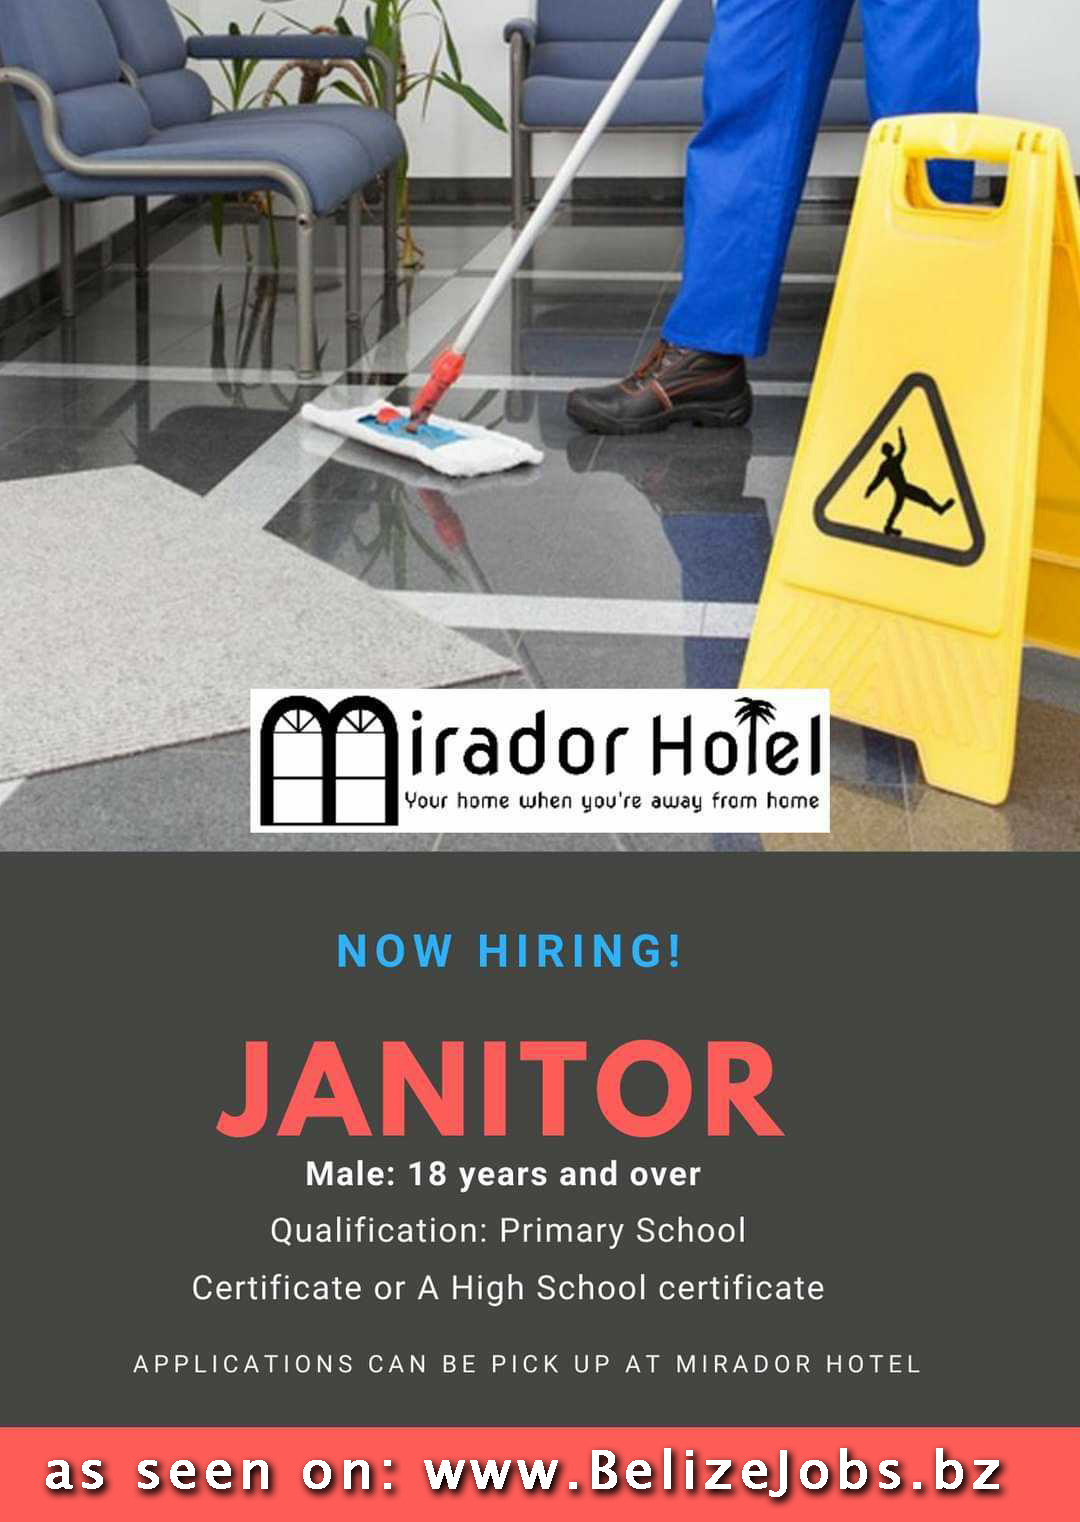 Job vacancy: Janitor in Corozal